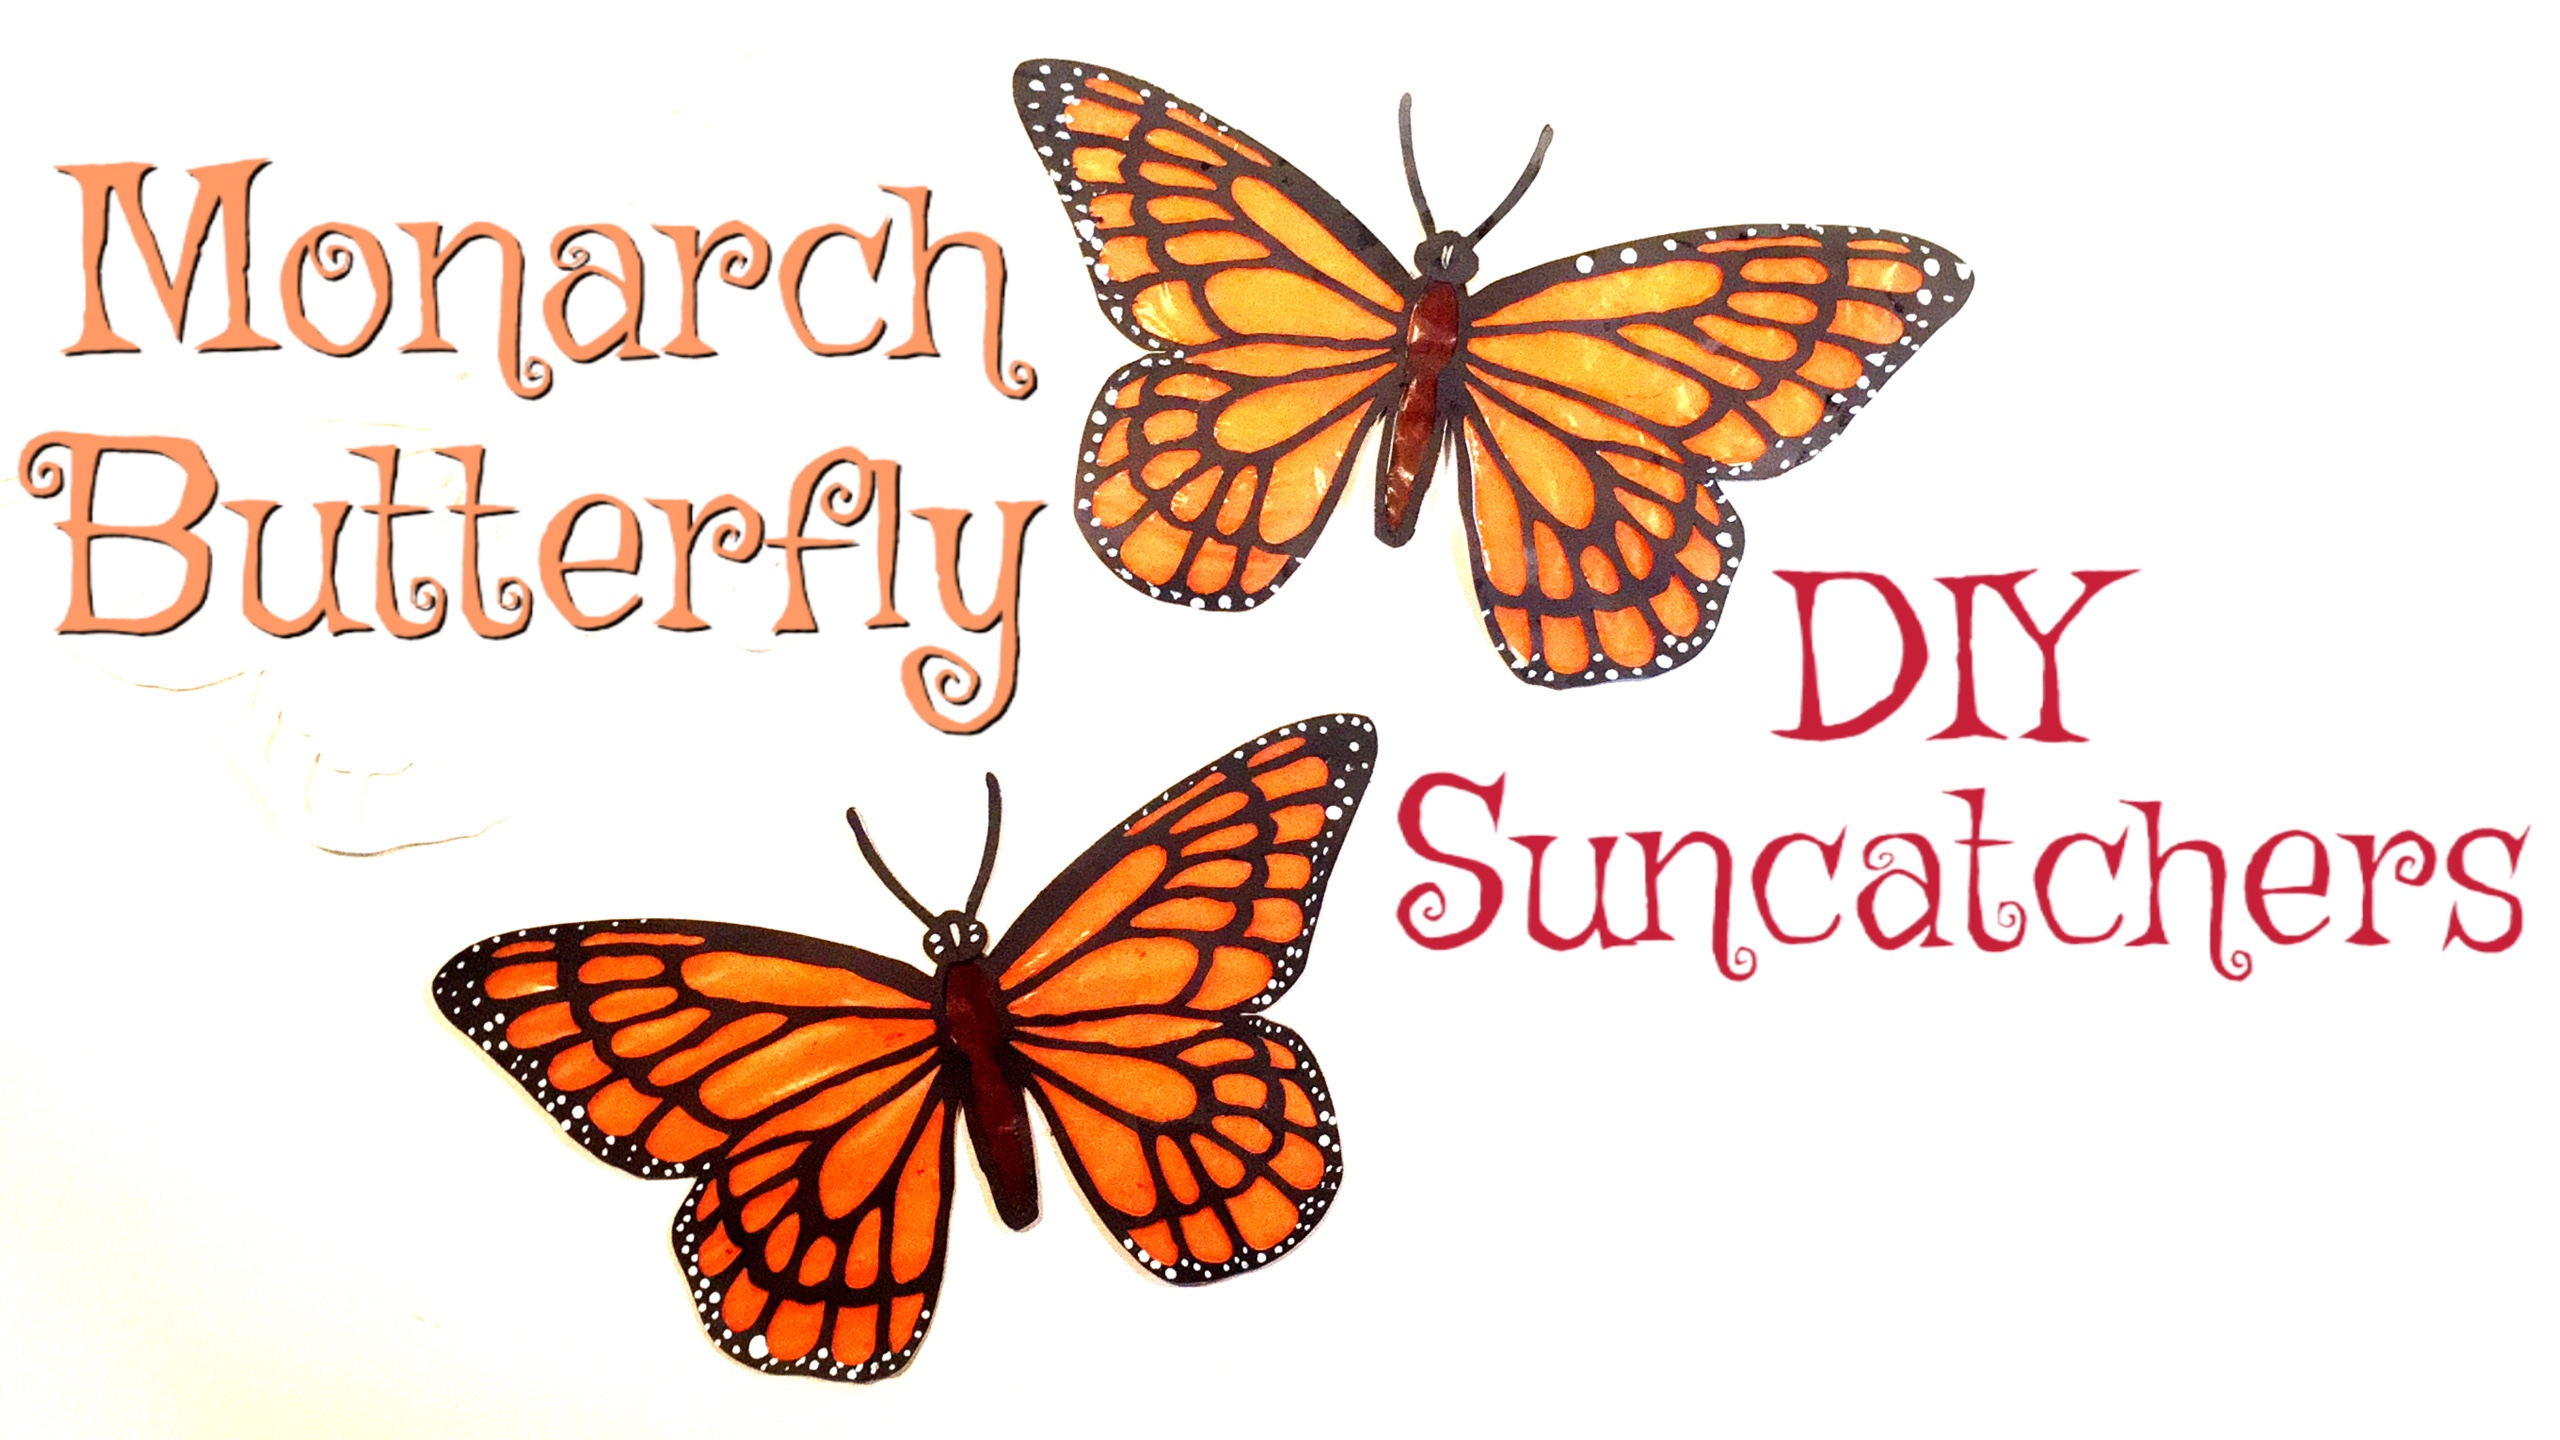 MONARCH BUTTERFLY SUNCATCHER